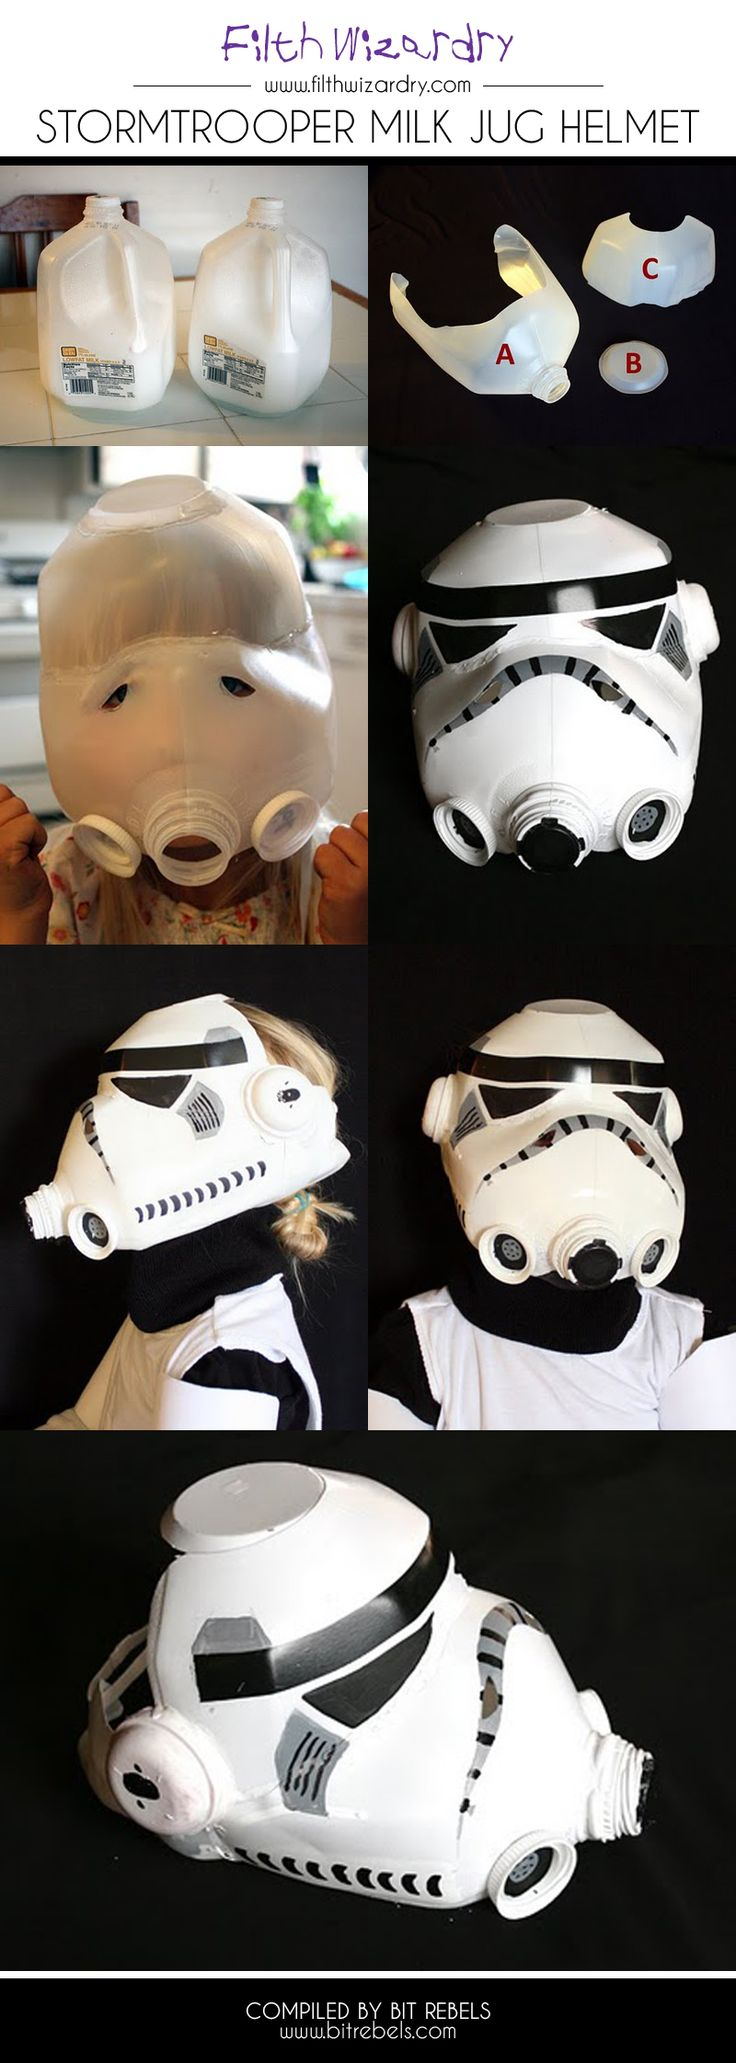 Stormtrooper Helmet Created Entirely Out Of A Milk Jug #upcycle #tutorial